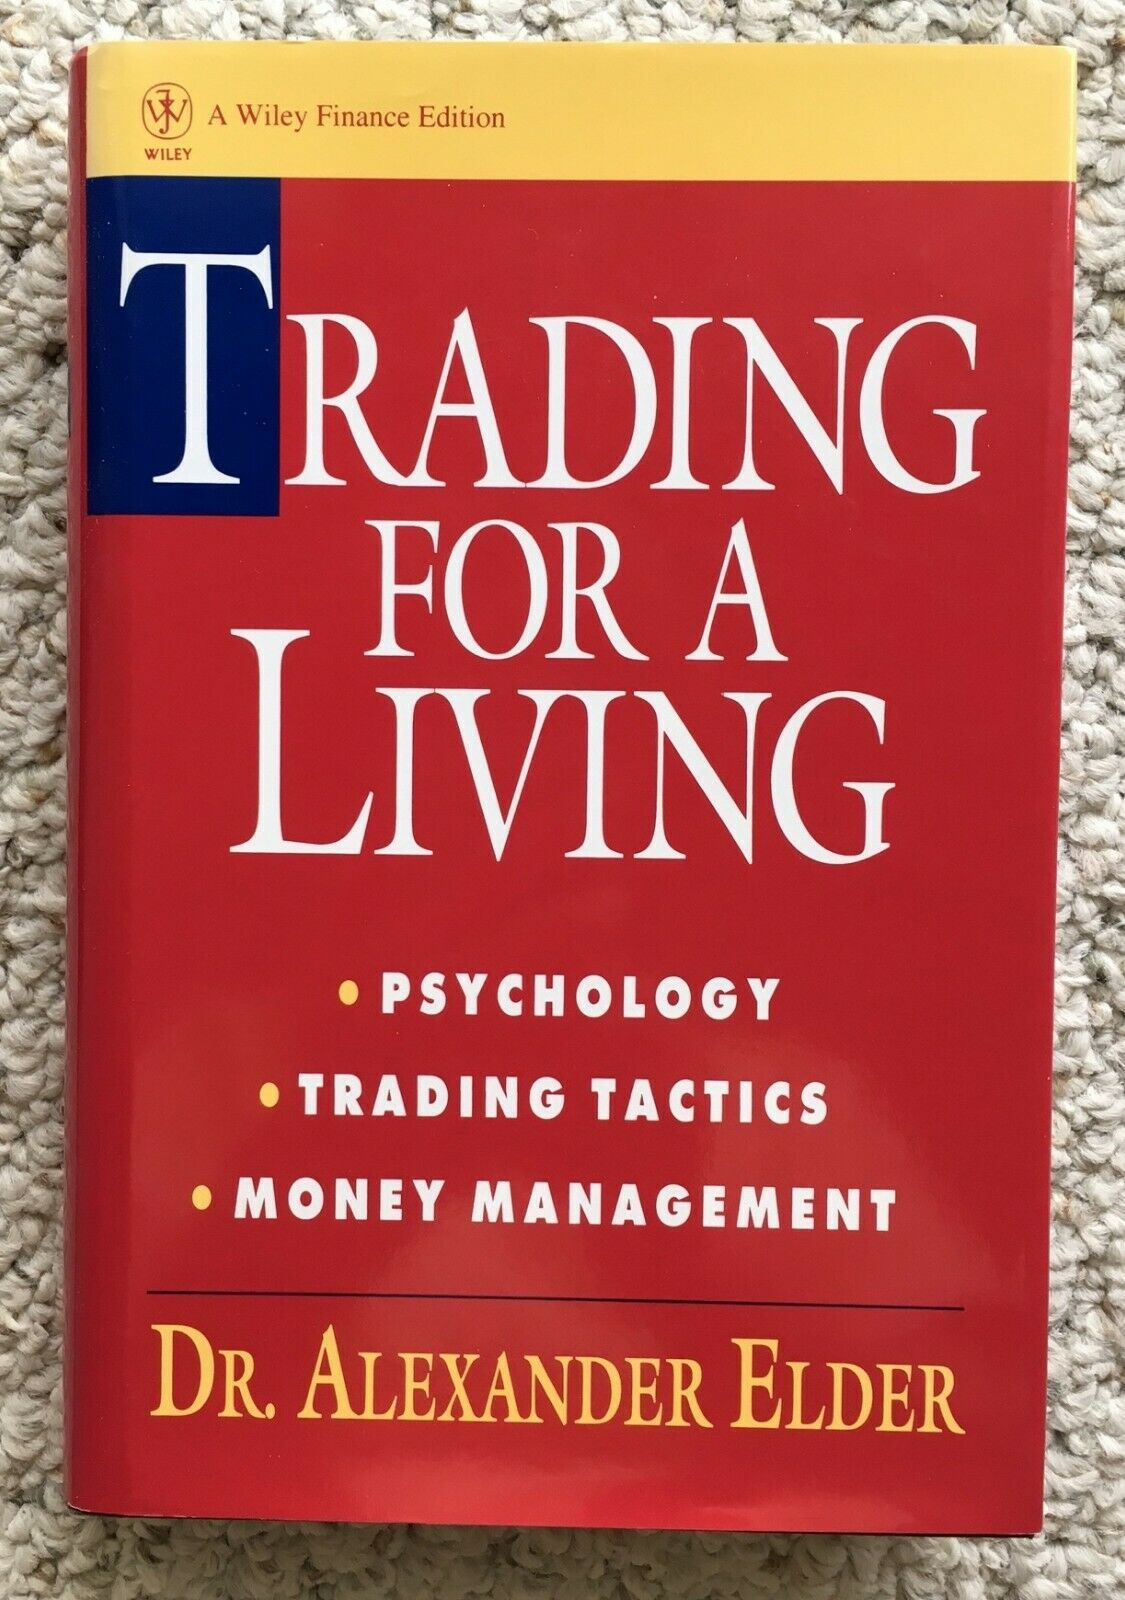 Wiley Finance: Trading for a Living: Investing, Stock Trading Tactics, Money…